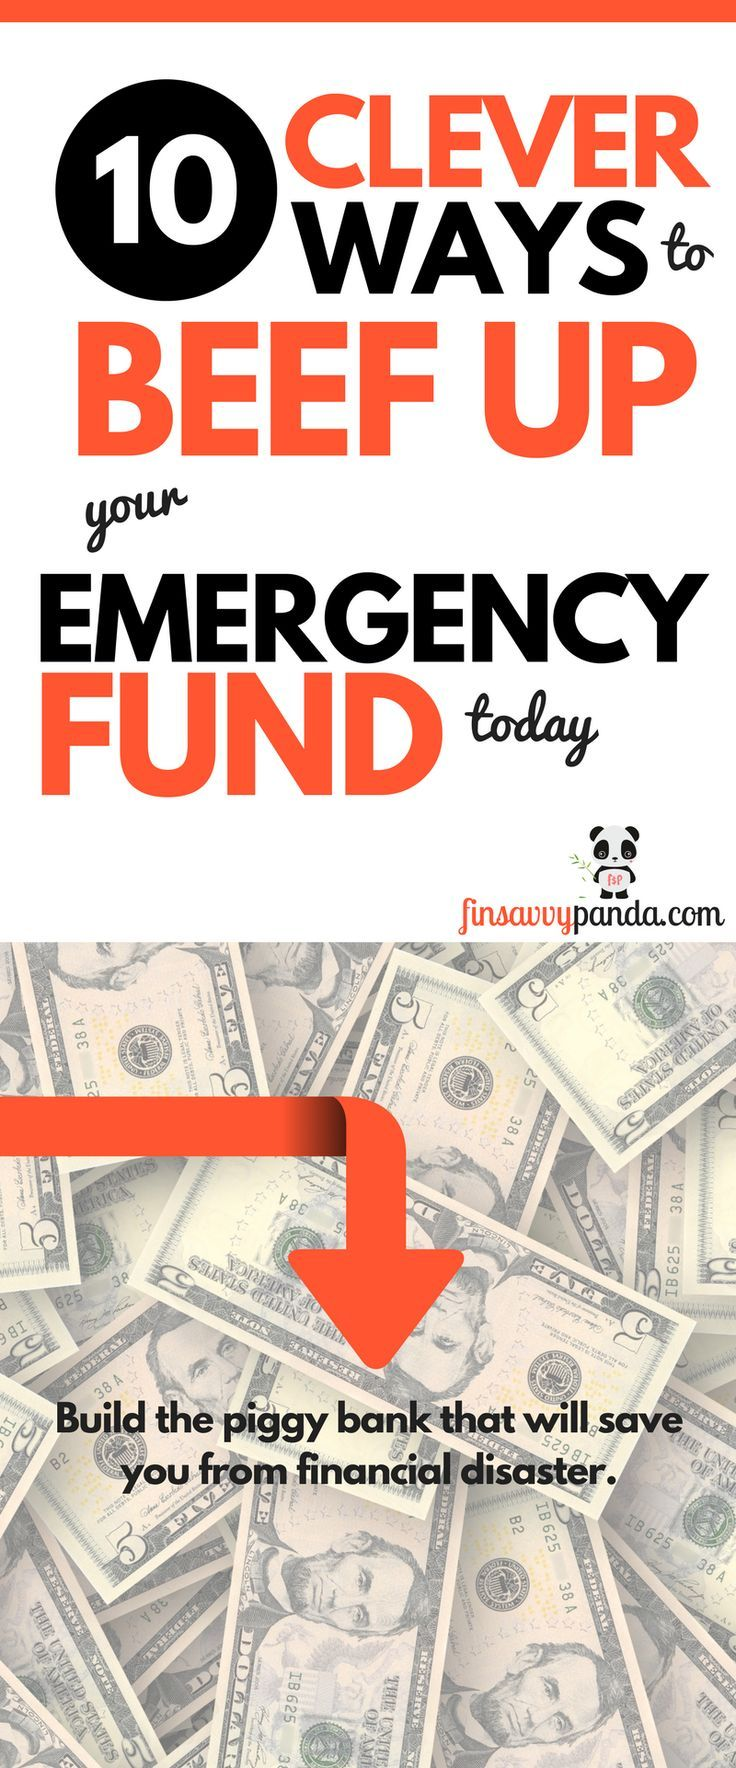 10 clever ways to build your emergency fund, stress-free! | emergency fund | money saving tips | make money ideas | personal finance tips | frugal living ideas | frugal tips | save money ideas | get out of debt